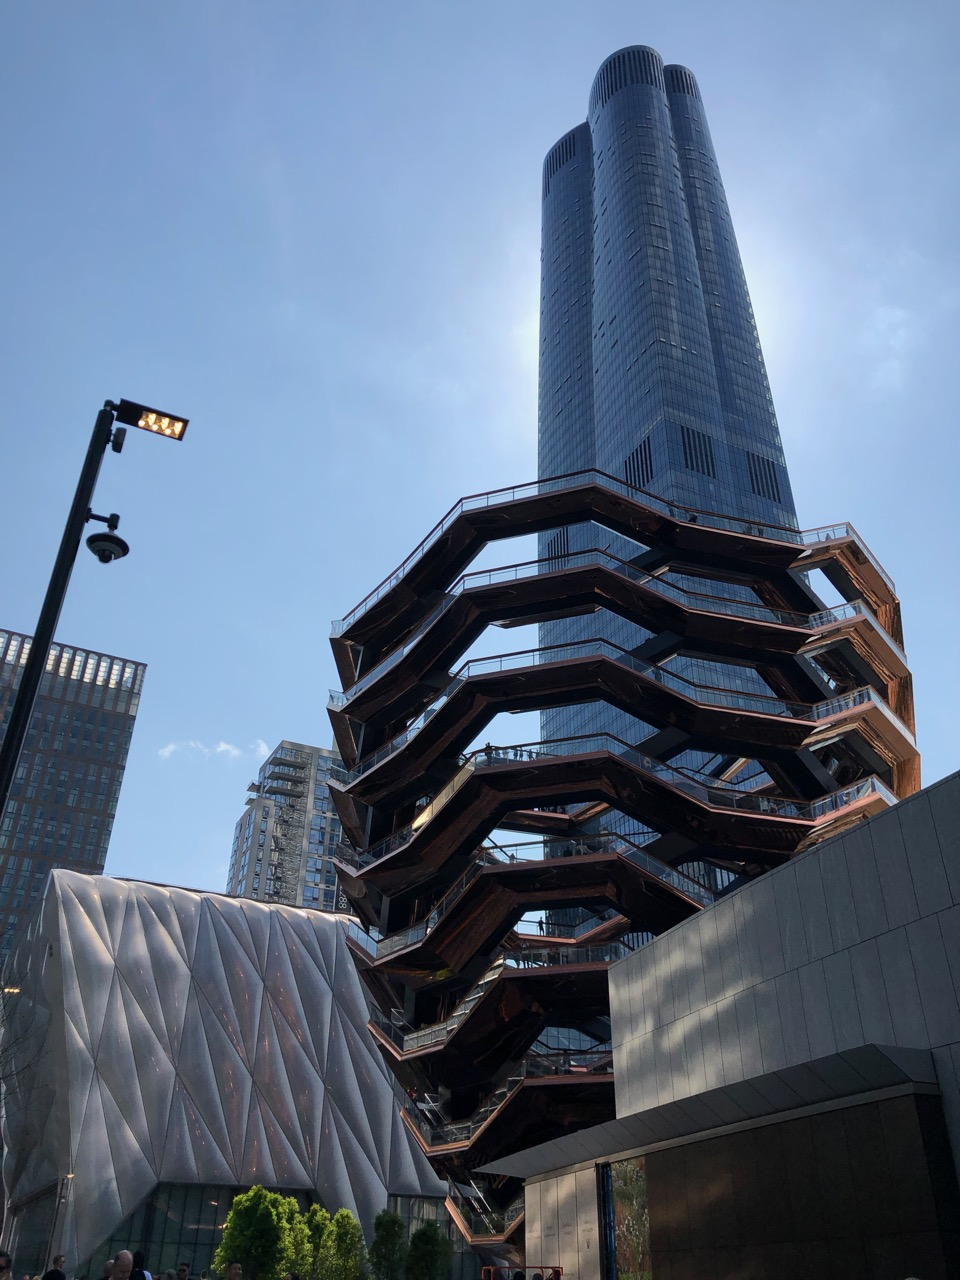 Hudson Yards with the Shed and the Vessel